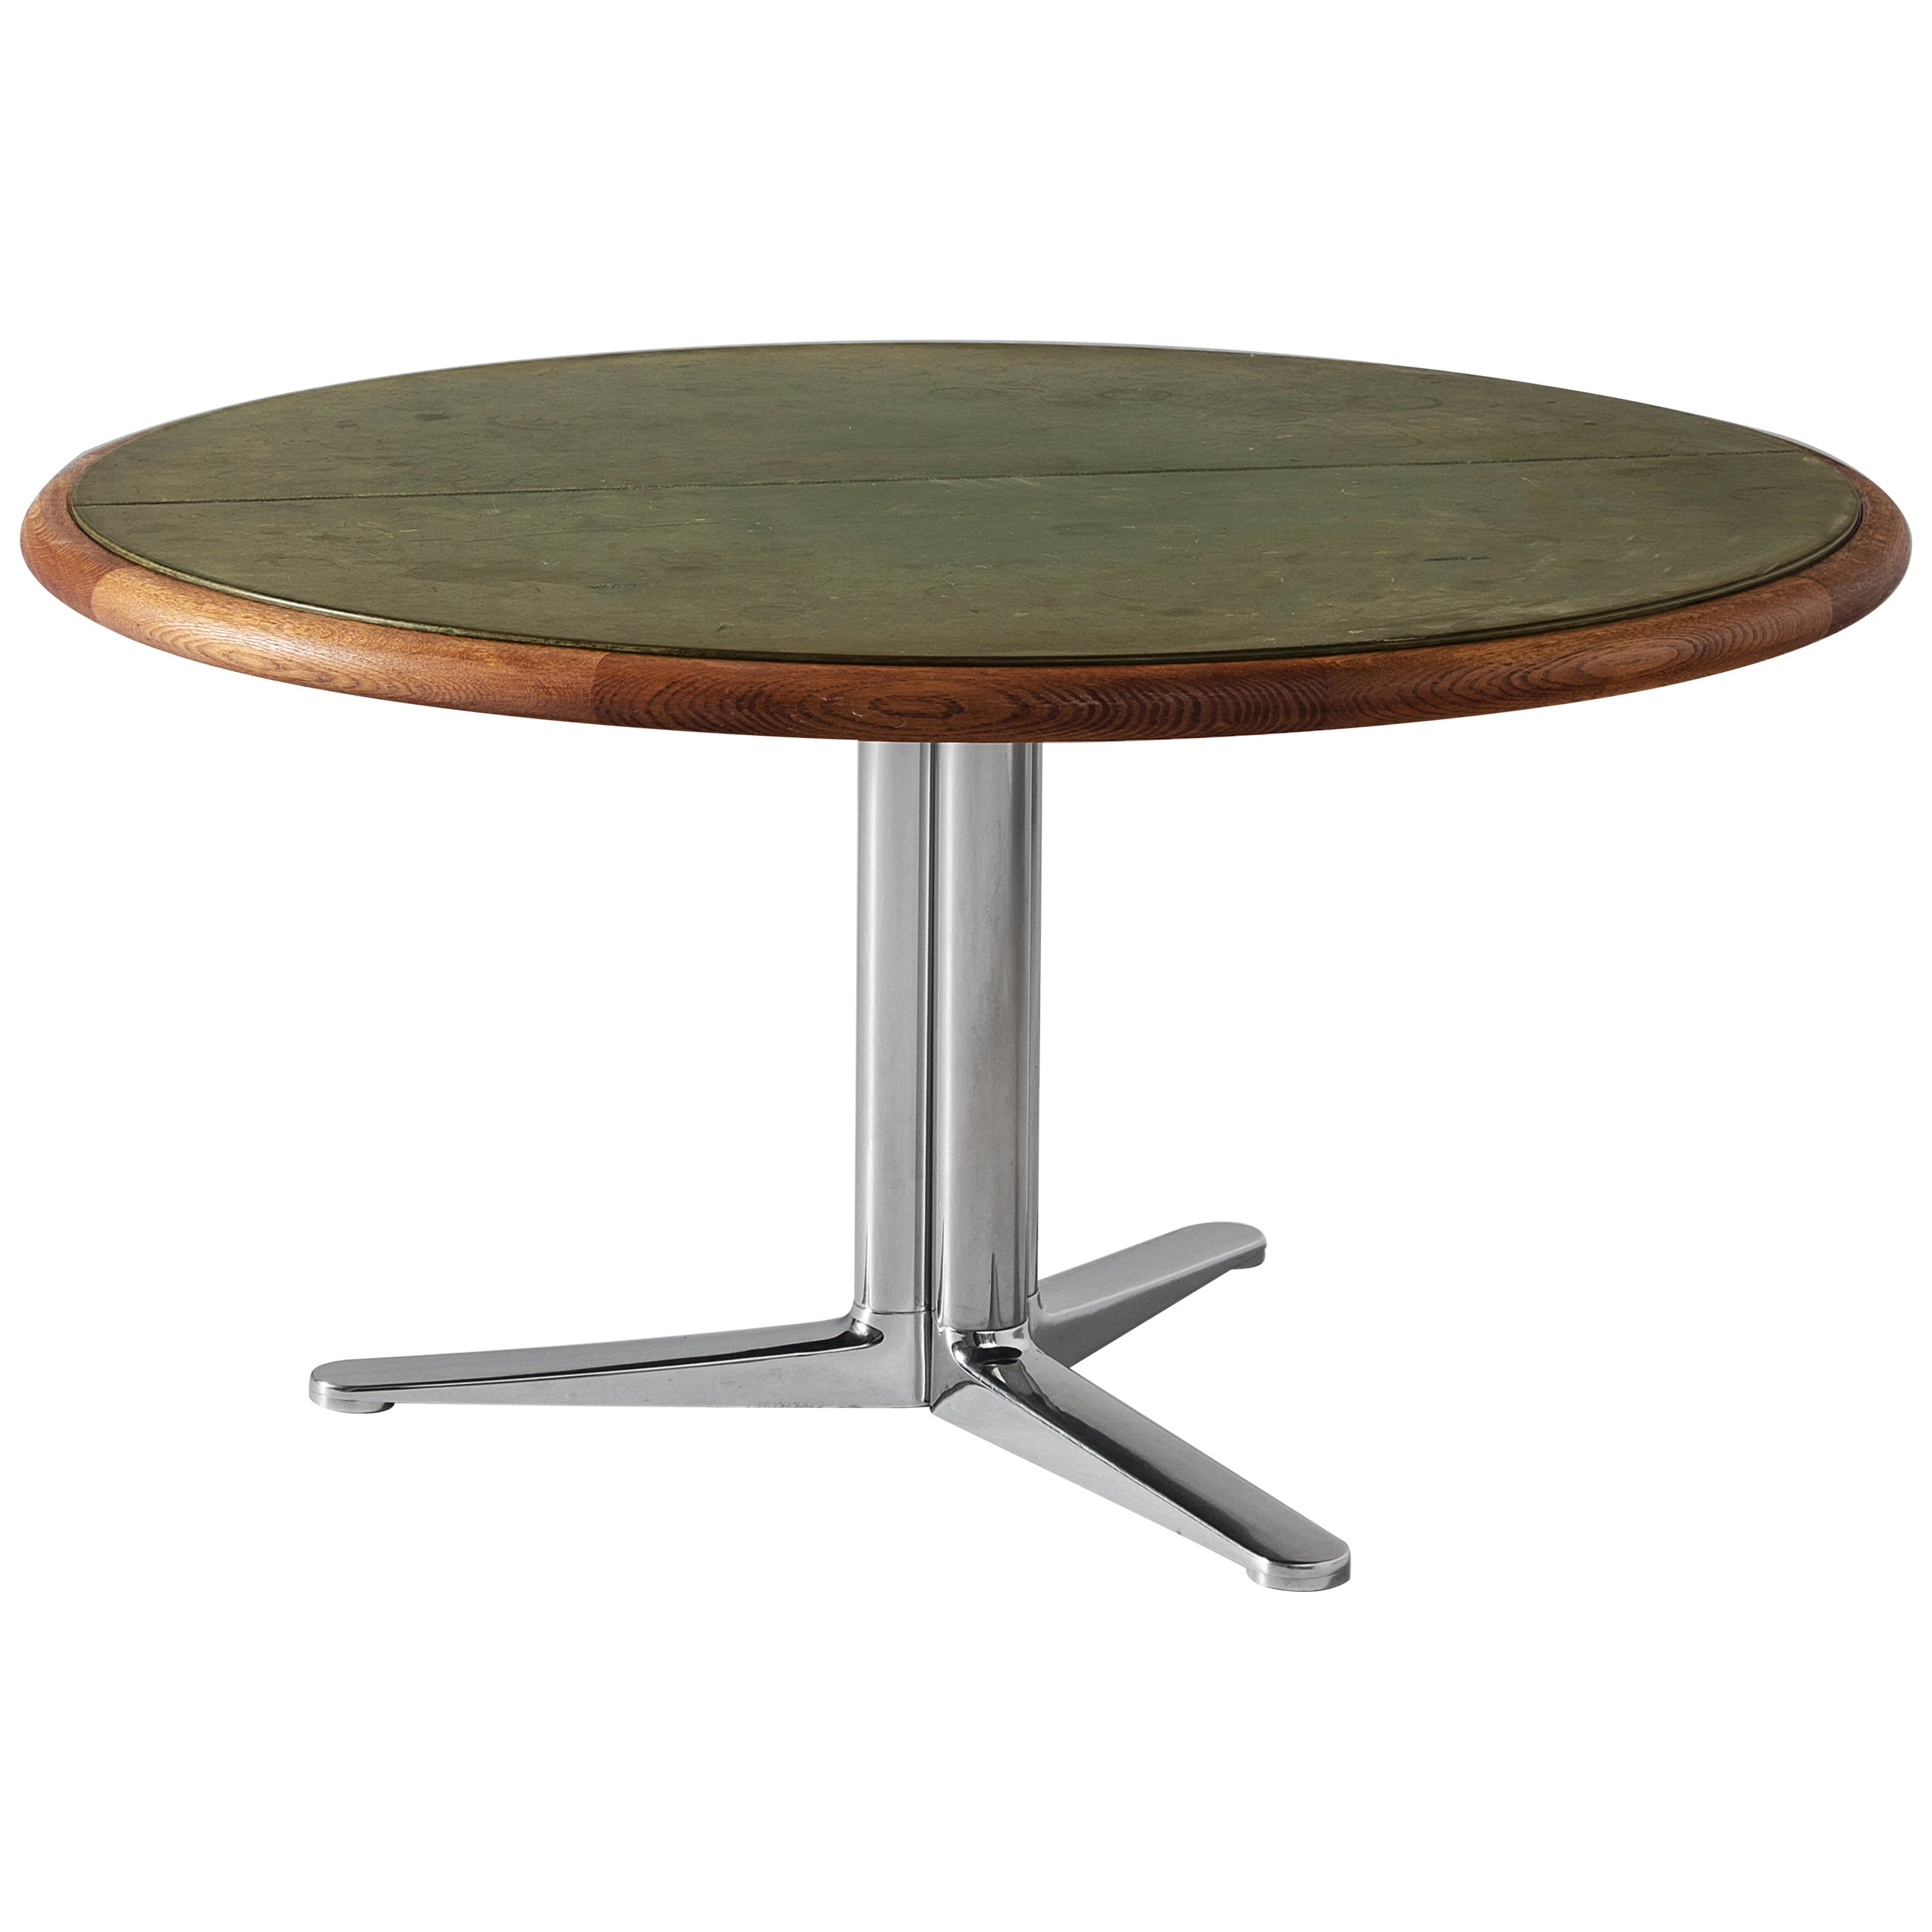 Warren Platner Dining Table for Knoll with Green Leather Top